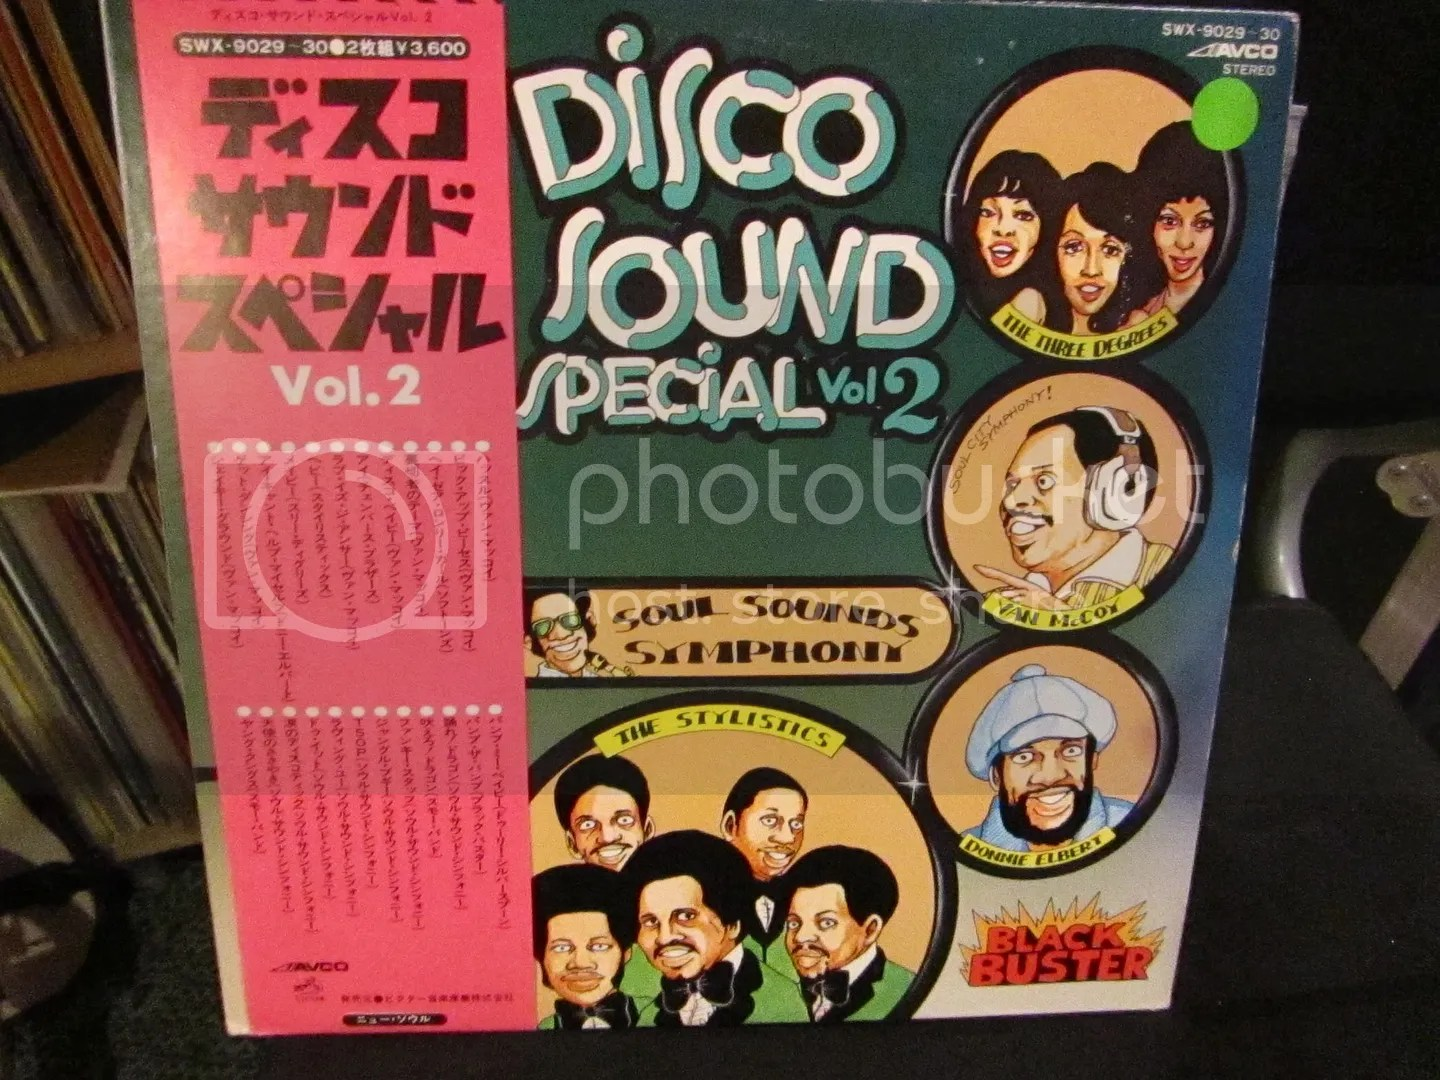 Black Buster Disco Sound